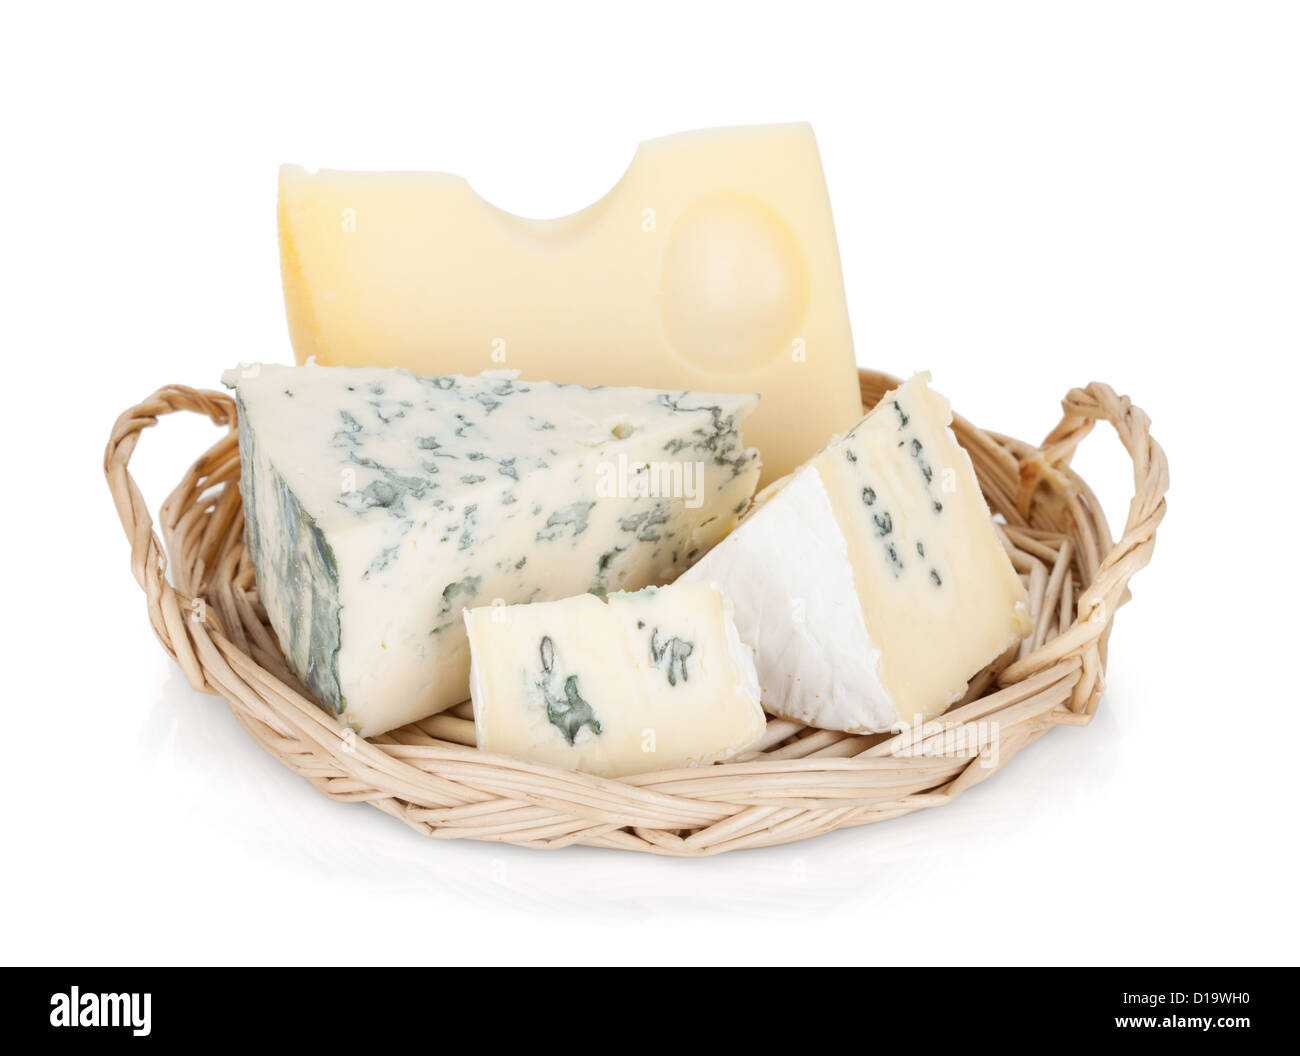 Various types of cheeses. Isolated on a white background. - Stock Image